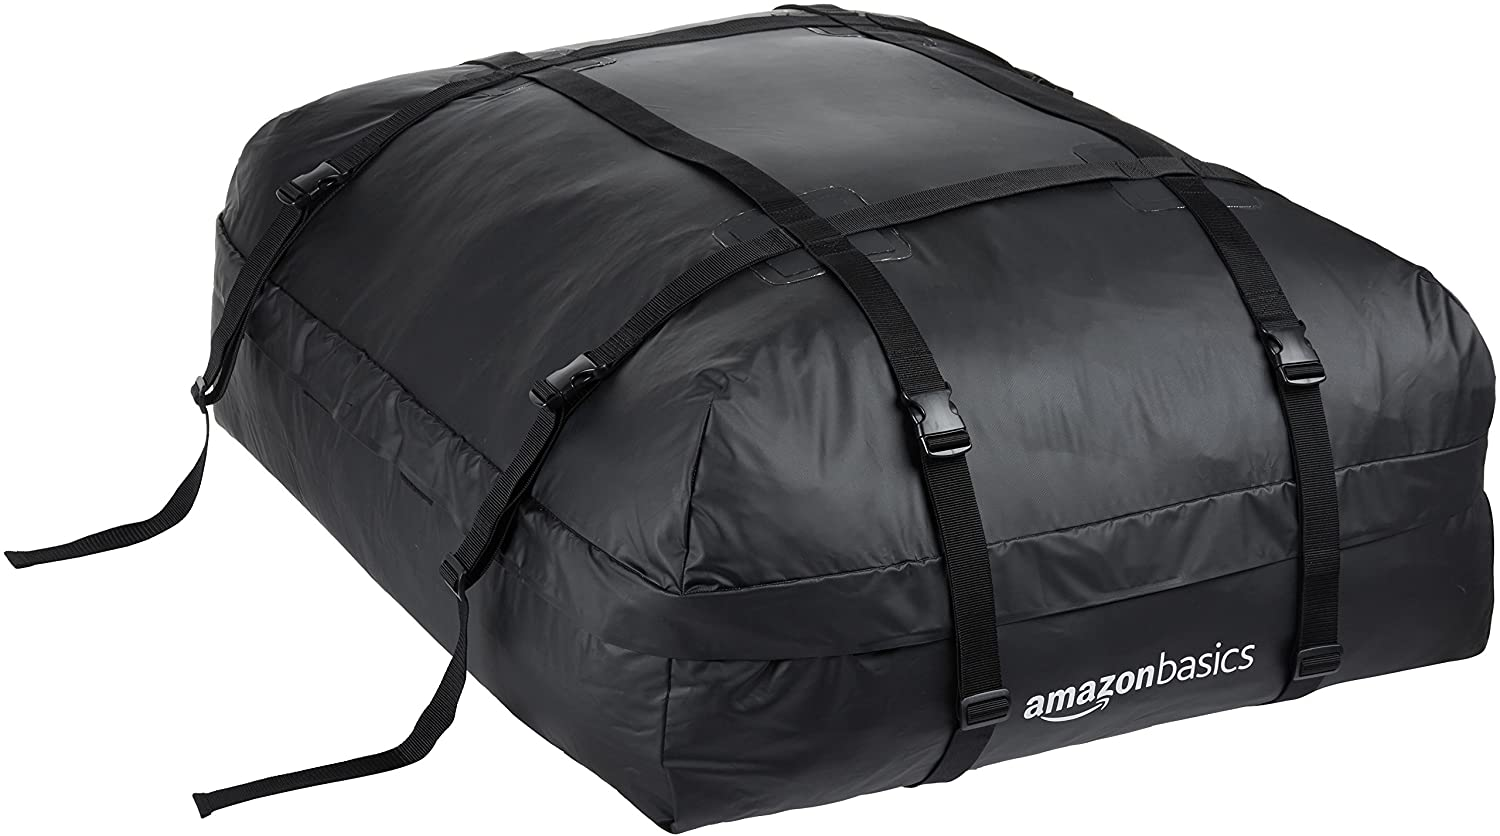 AmazonBasics Rooftop Cargo Carrier Bag